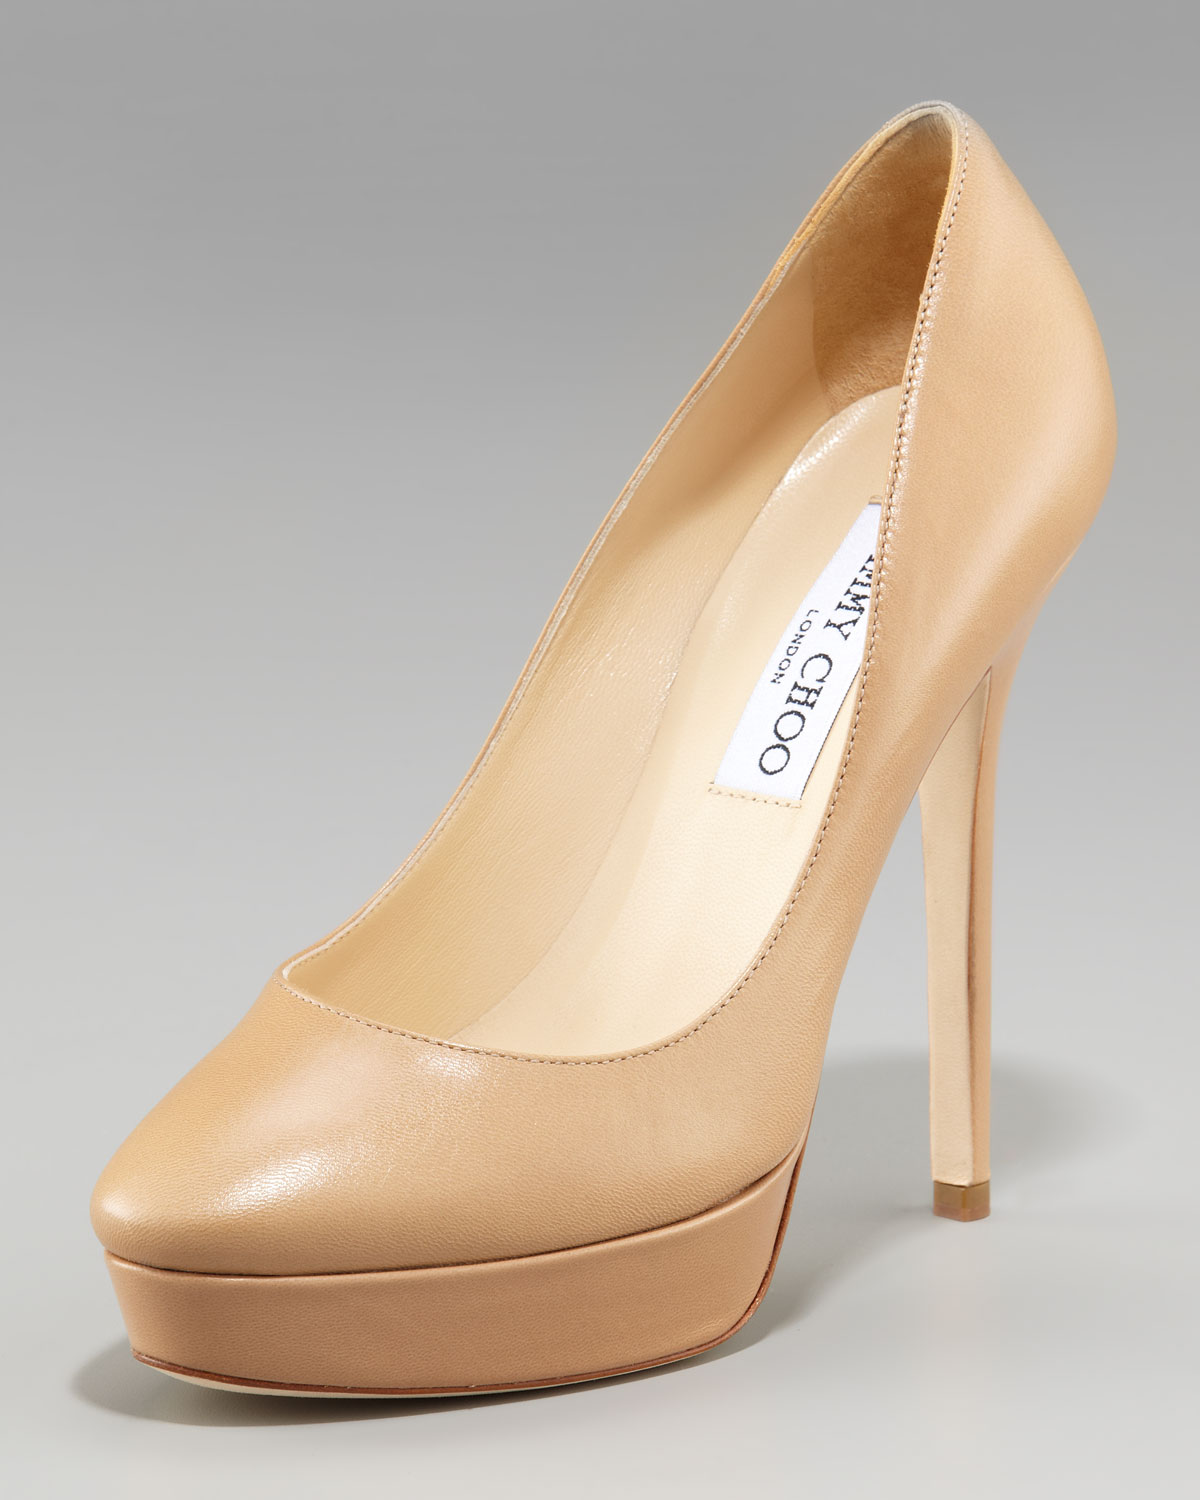 742f4aa3f92 Lyst - Jimmy Choo Cosmic Leather Platform Pump in Natural